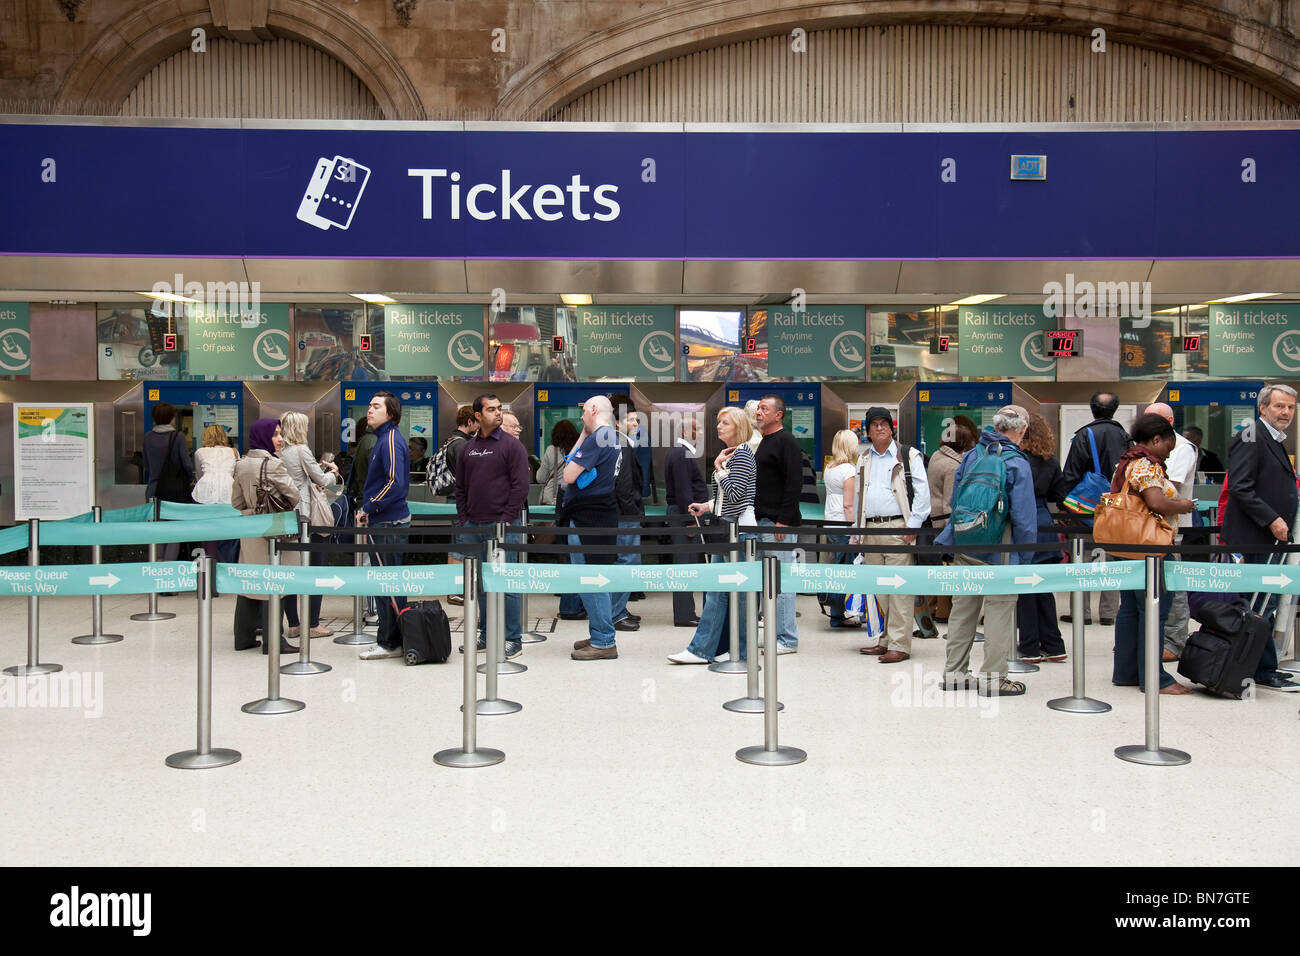 People waiting in a queue to by railway tickets in Victoria Station, London - Stock Image